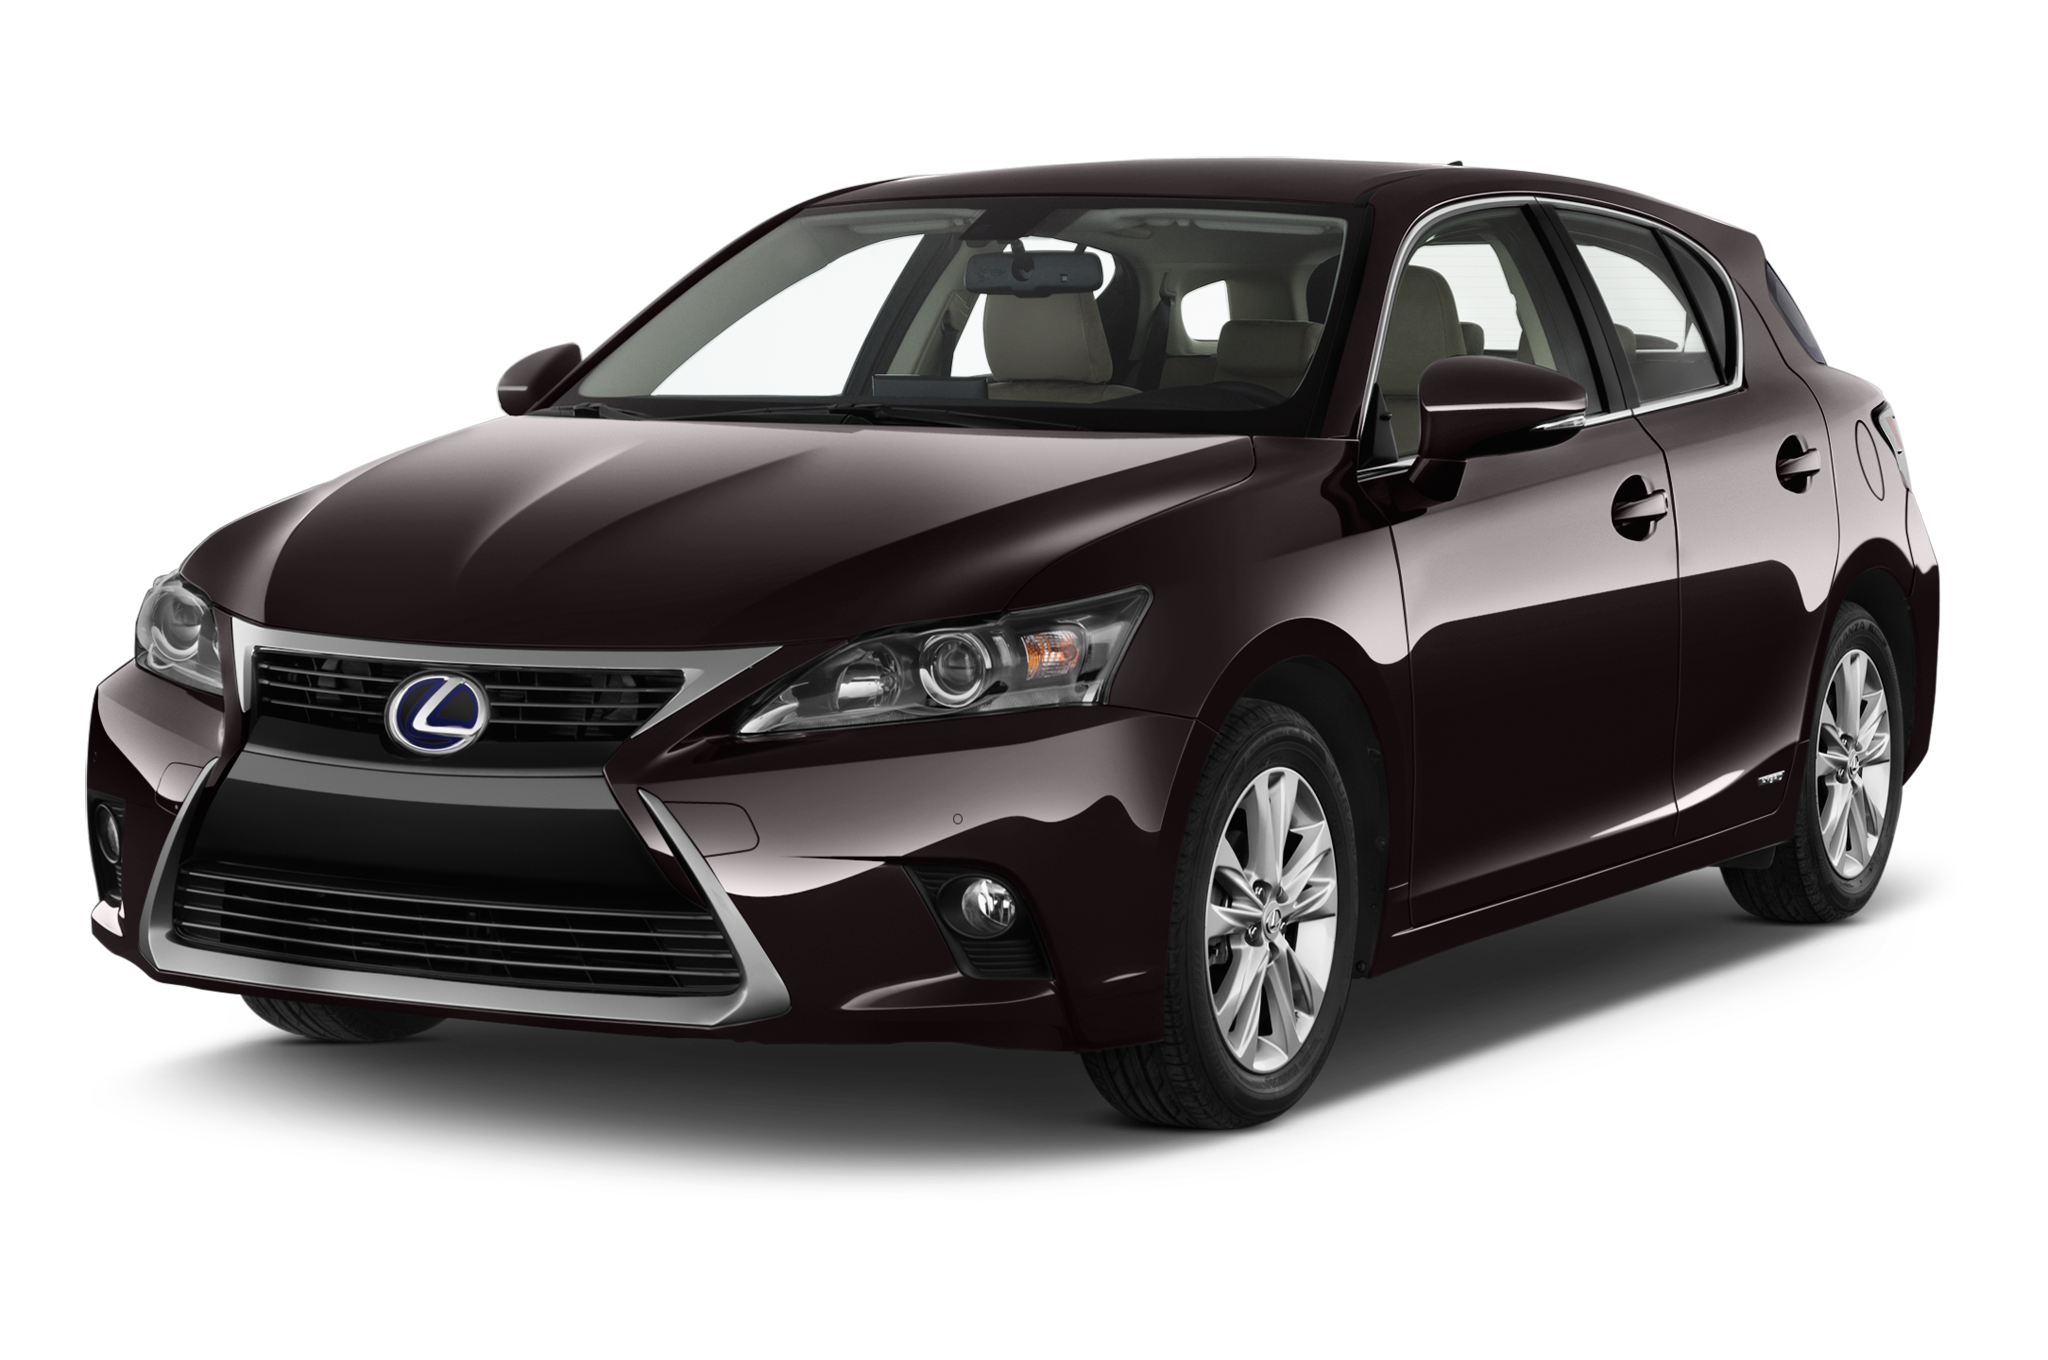 2015 lexus ct 200h specs and features msn autos. Black Bedroom Furniture Sets. Home Design Ideas